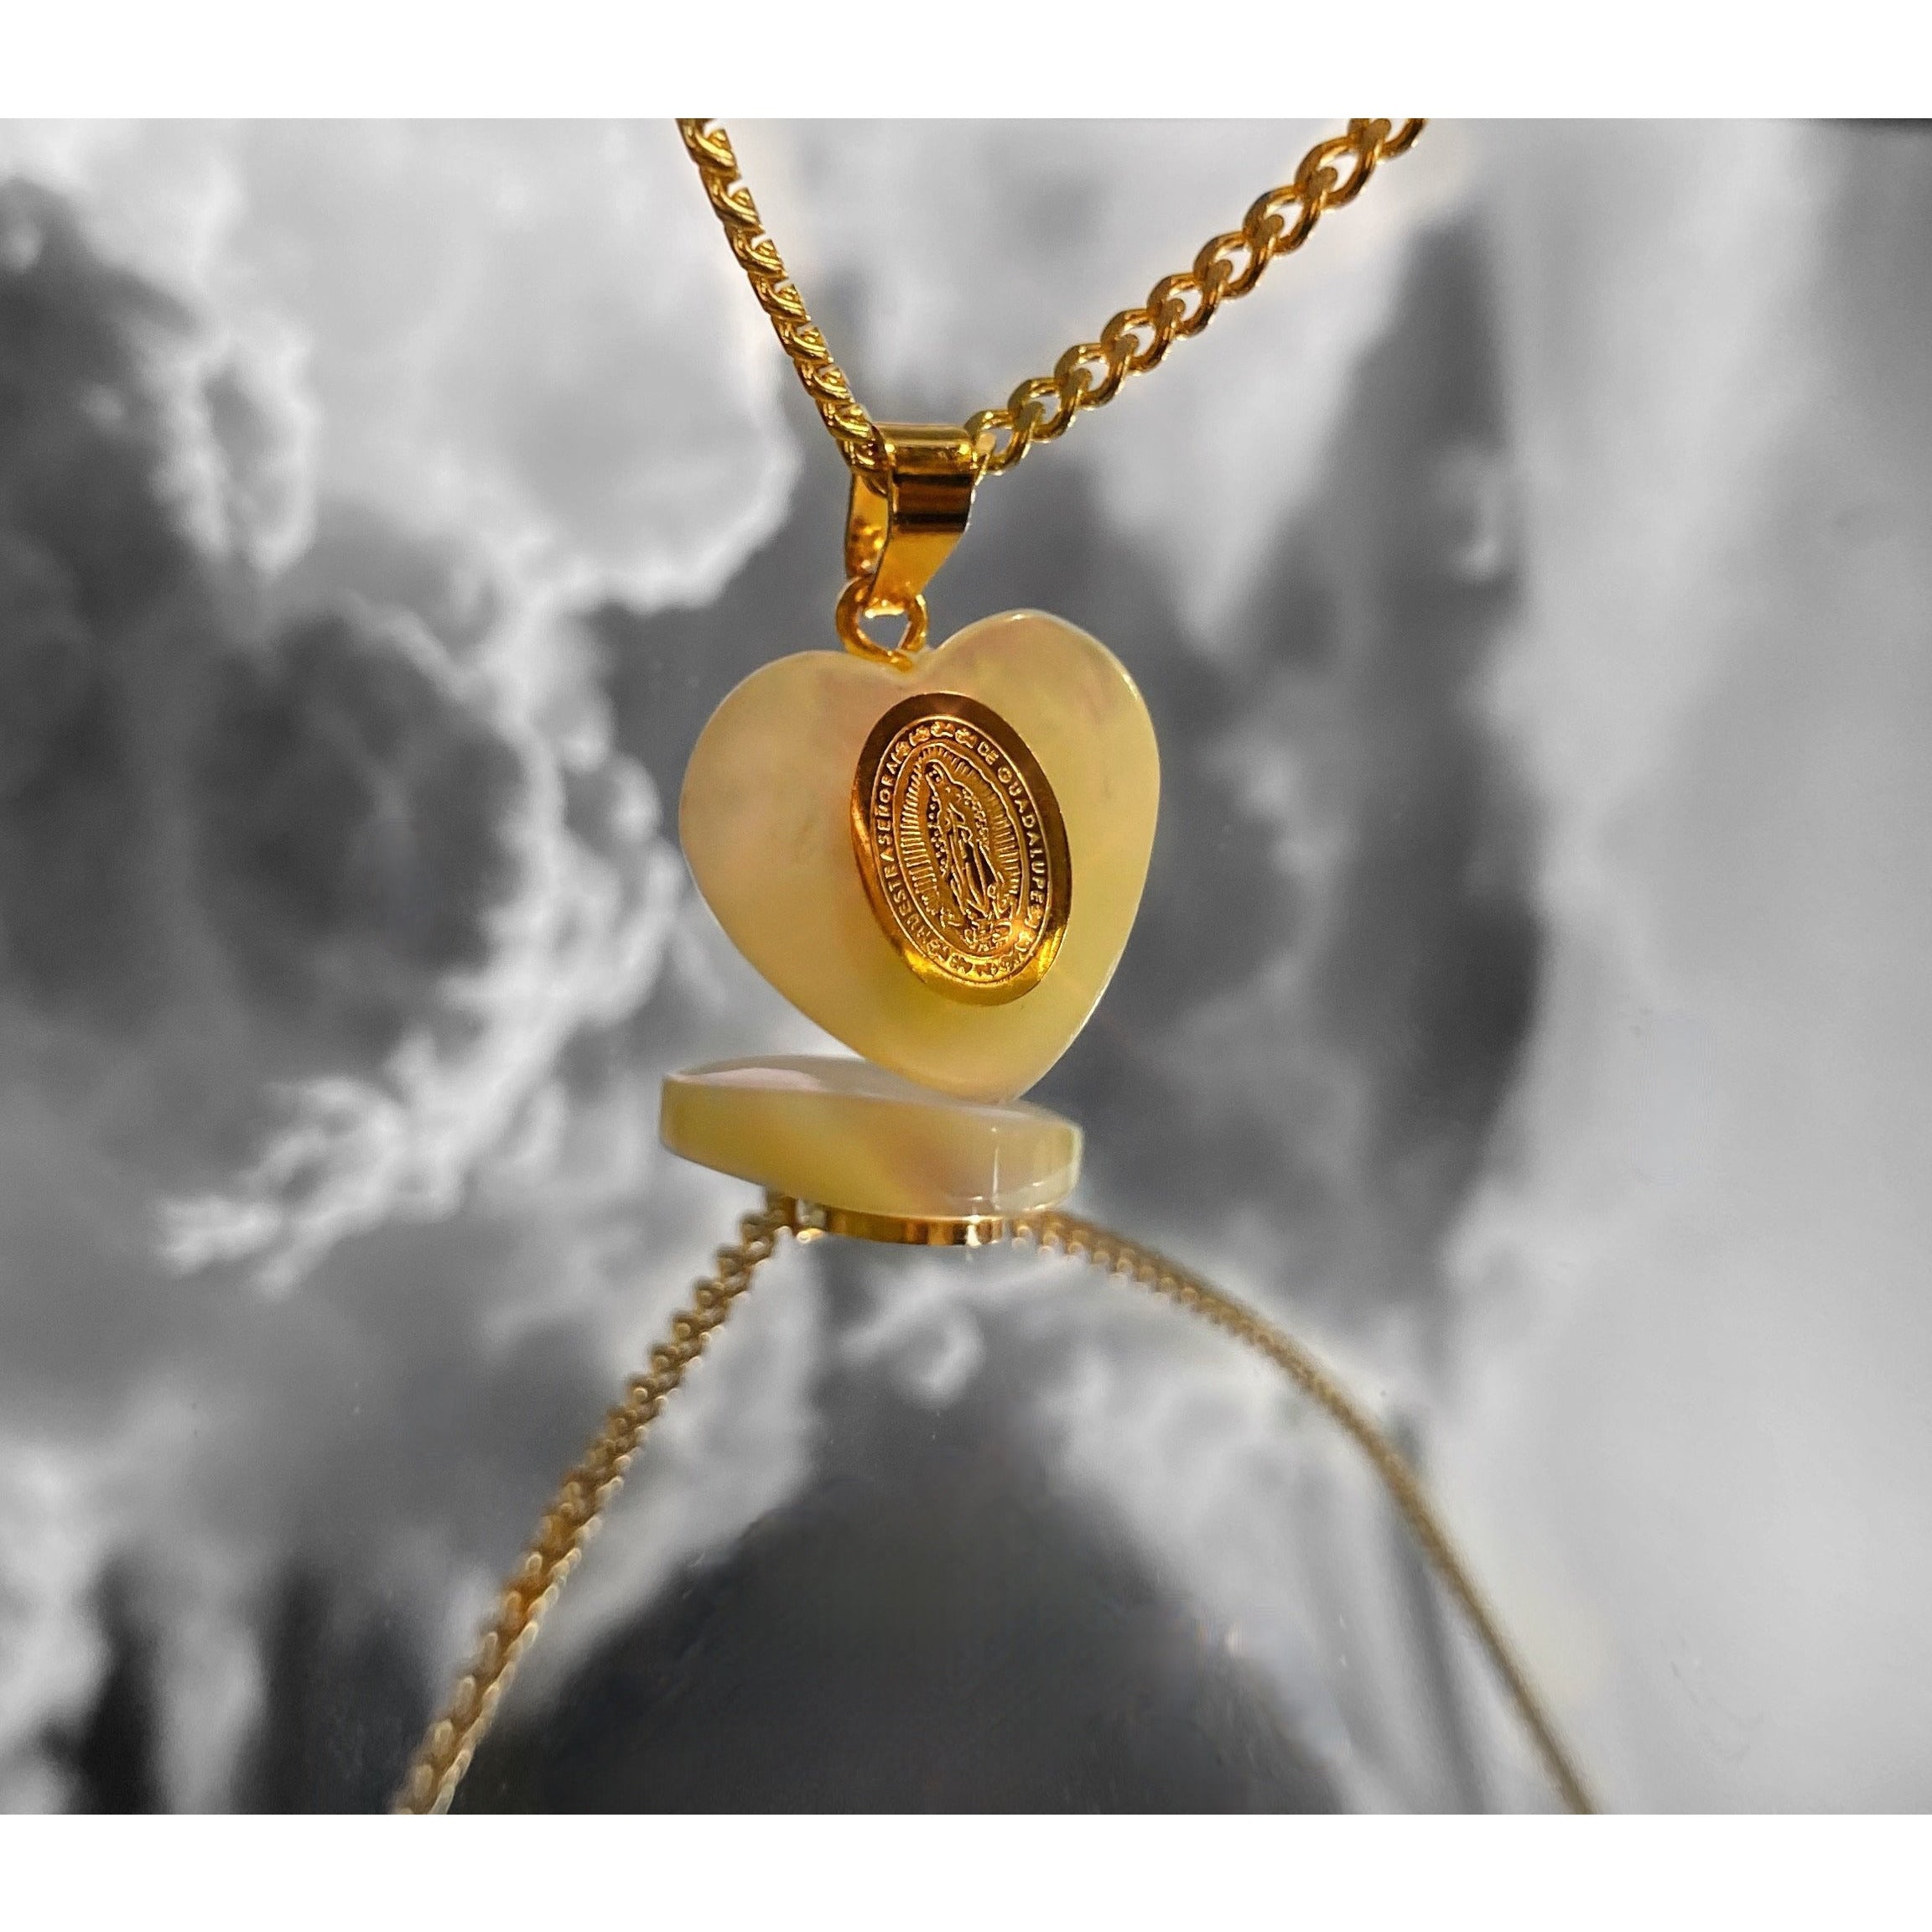 The Heart of Virgen Mary Necklace